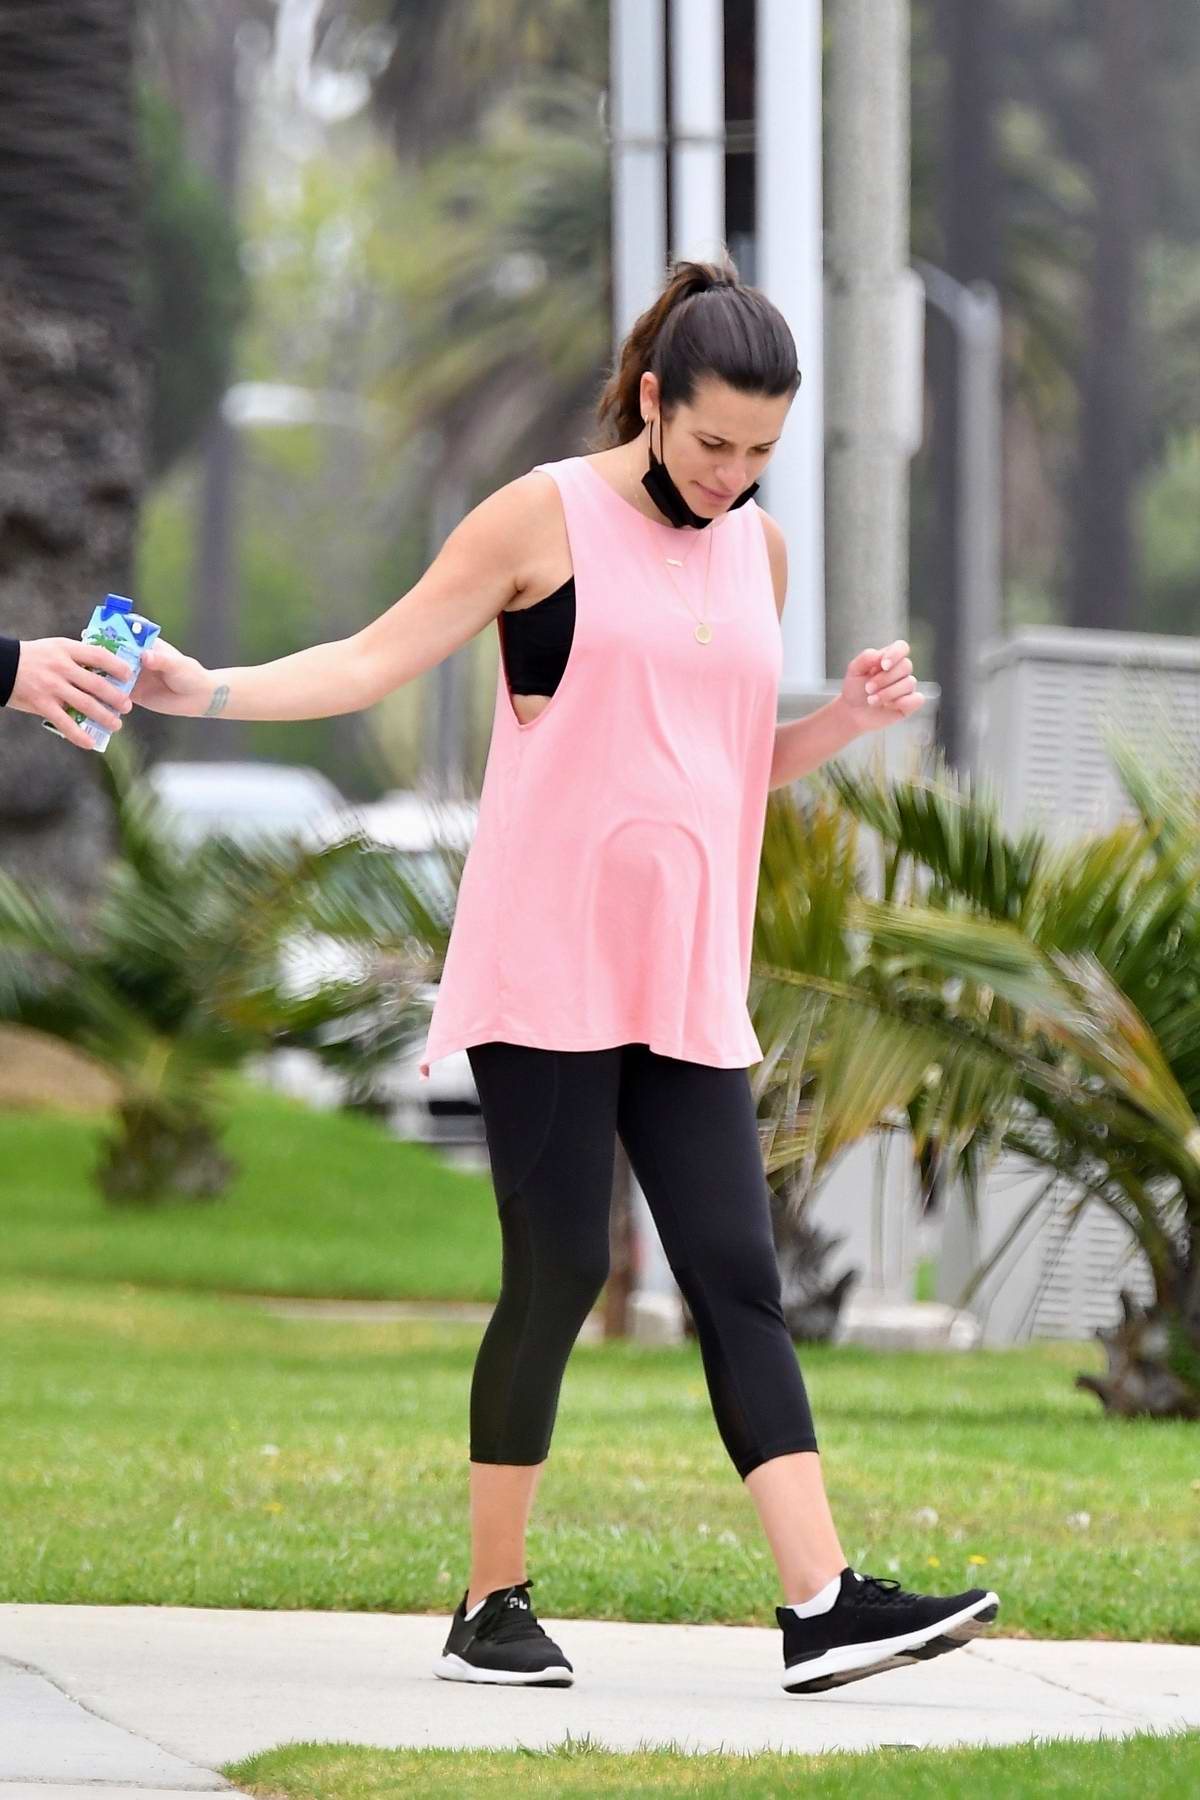 Lea Michele seen for the first time since having her baby as she steps out for a walk with Zandy Reich in Santa Monica, California